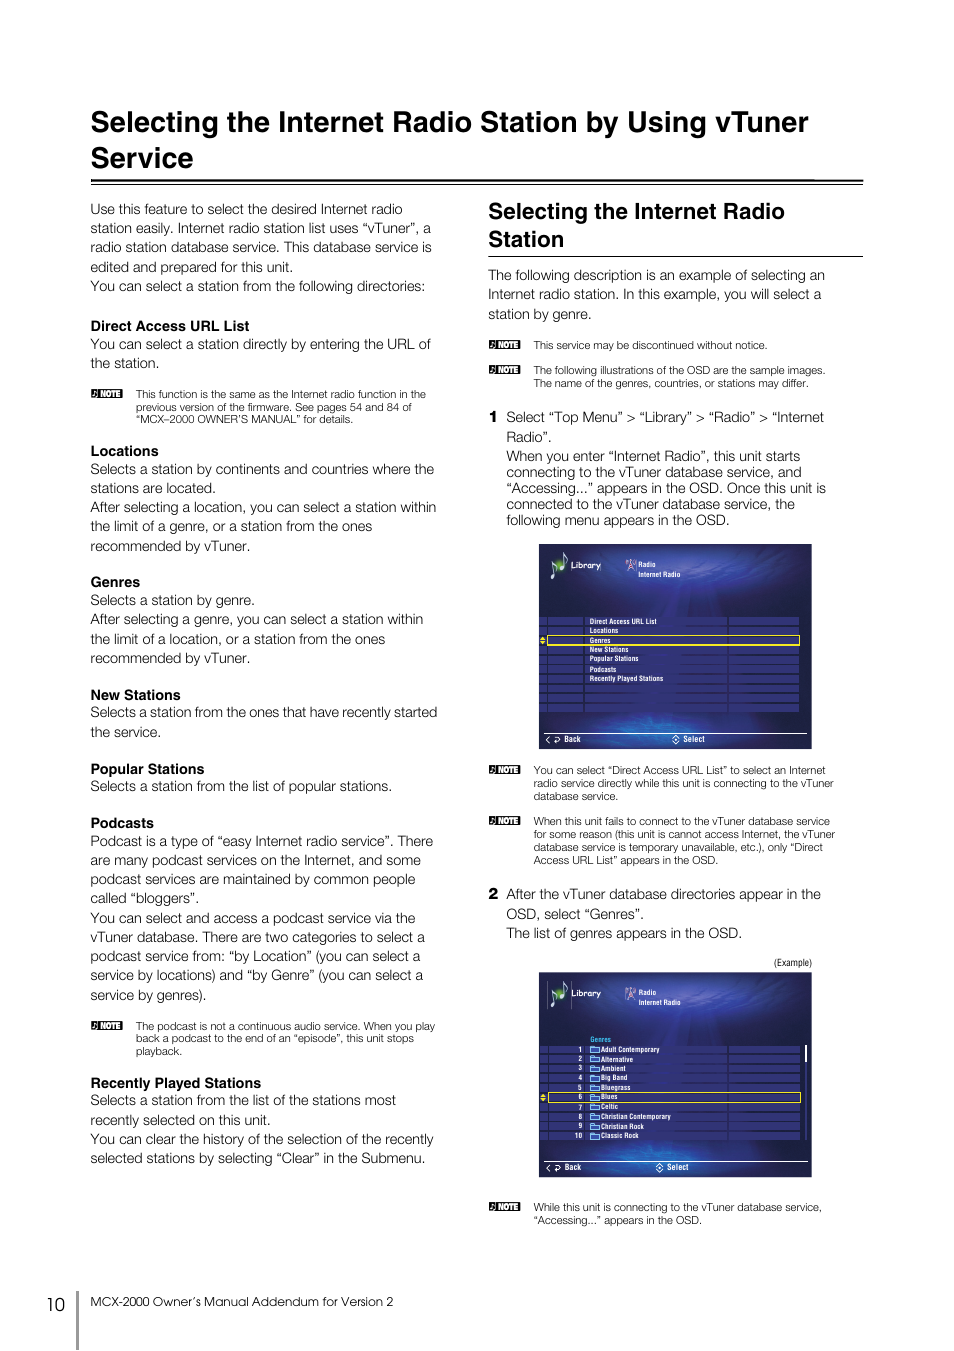 Selecting the internet radio station, By using vtuner